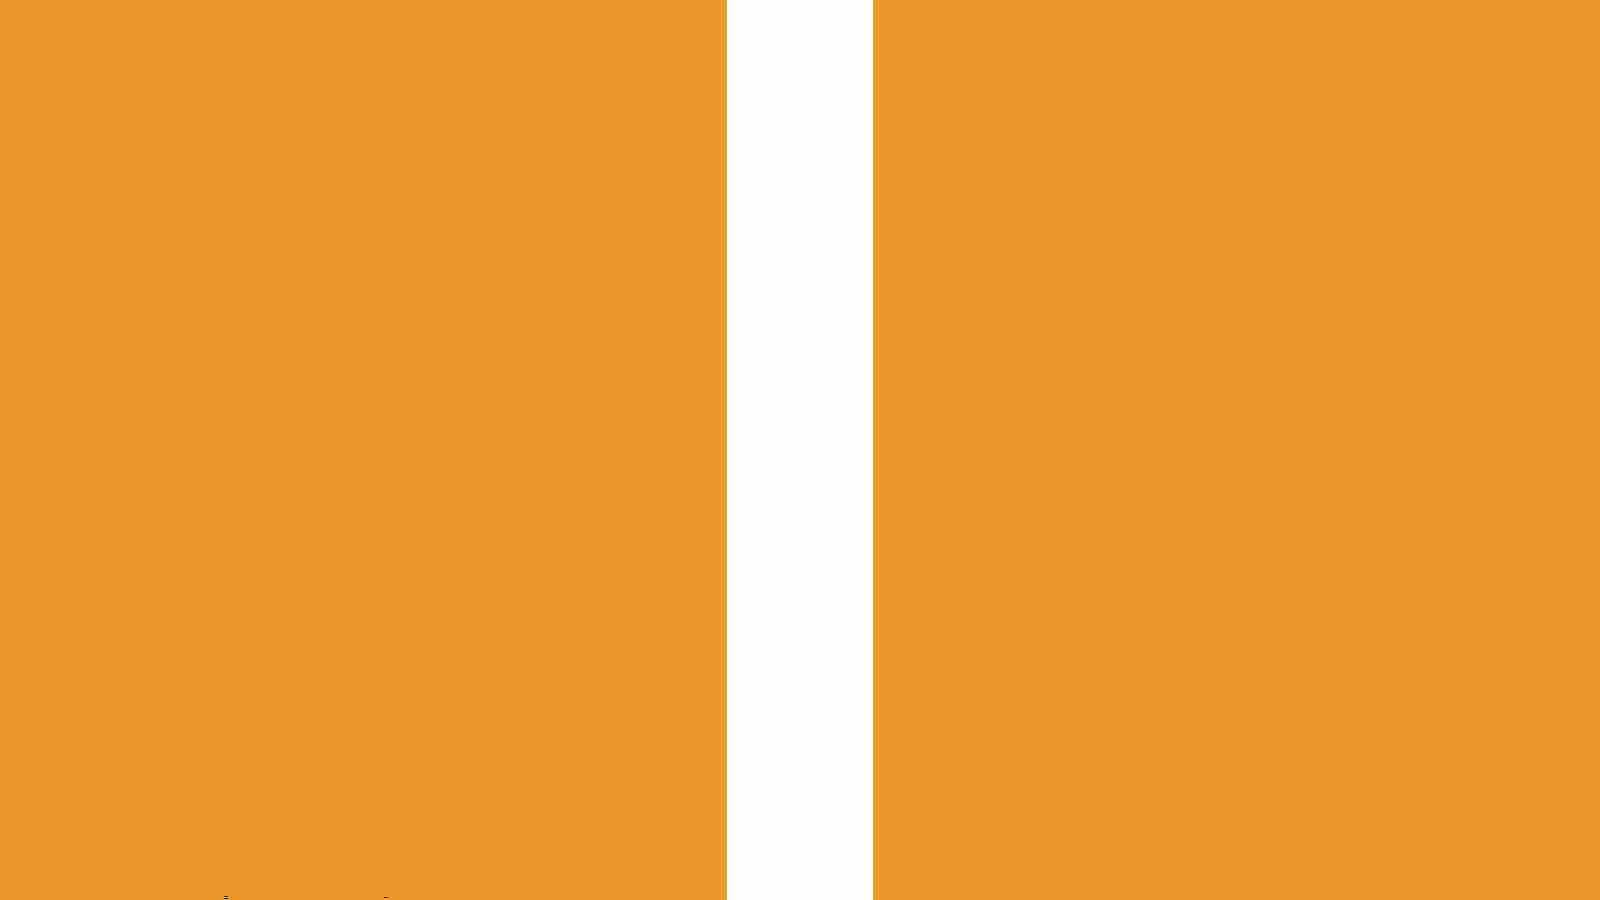 2020 Tennessee Vols Football Season Tickets (Includes Tickets to All Regular Season Home Games)